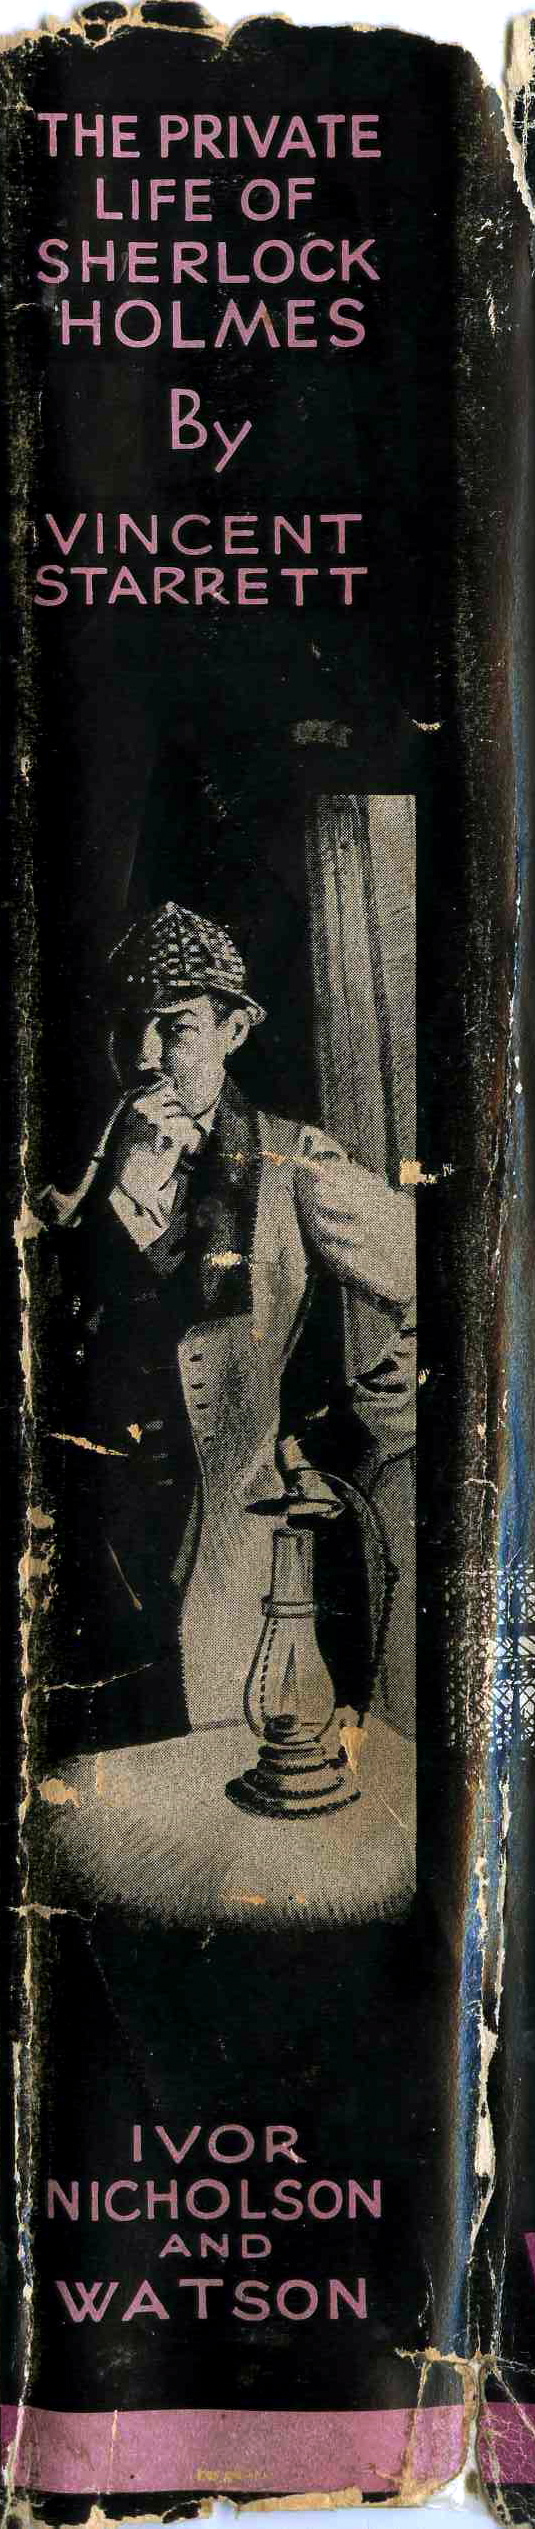 """The dust jacket spine could not avoid the """"detective in deerstalker"""" trope, but I do like the image of Holmes in contemplation."""